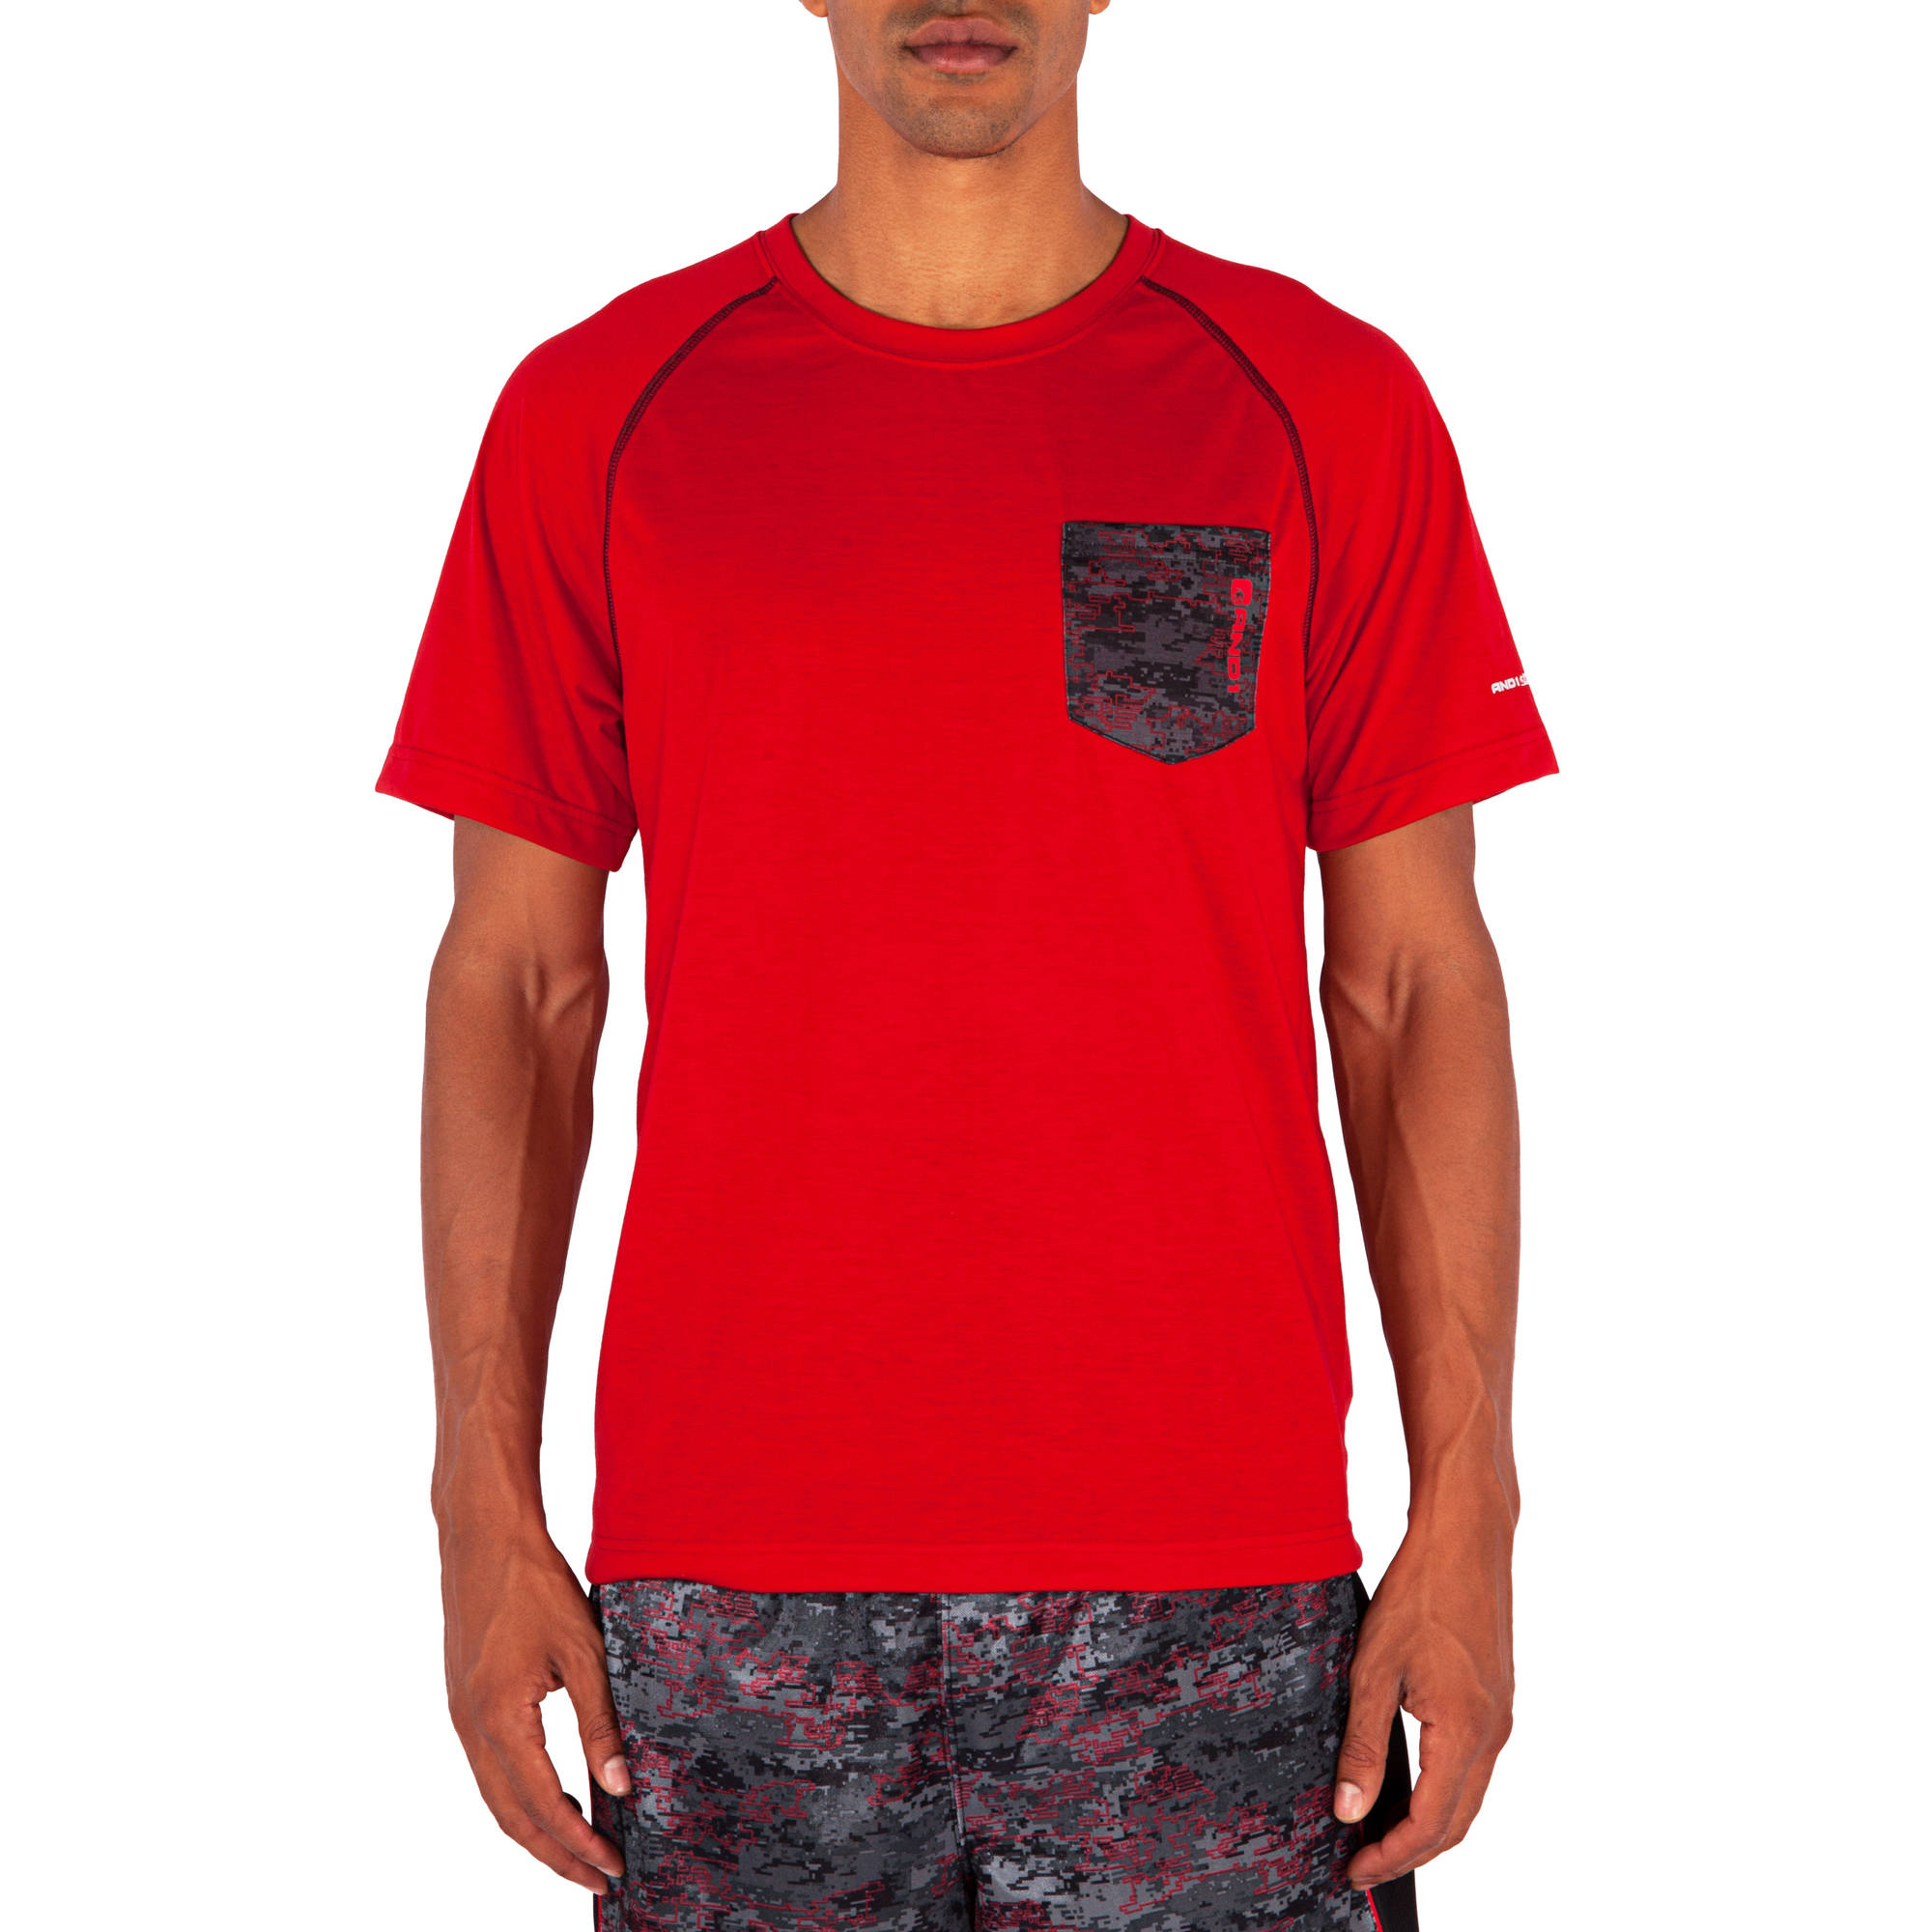 And1 Men's In The Pocket Performance Top